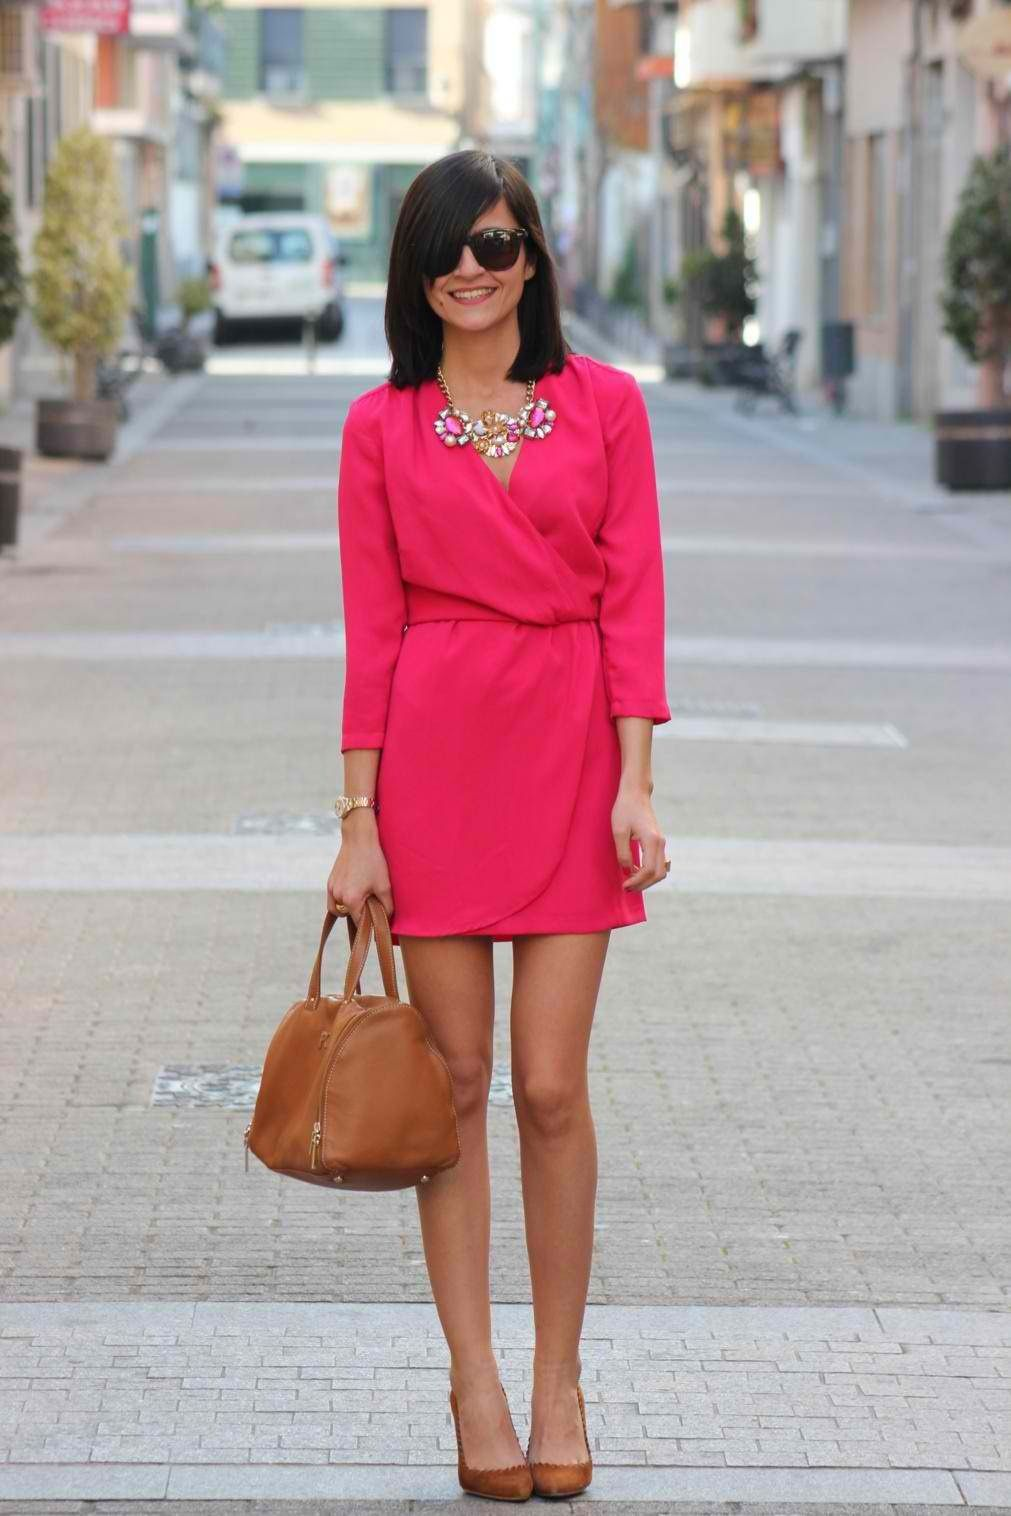 Pin by Samantha Dorman on My Style   Fashion, What to wear